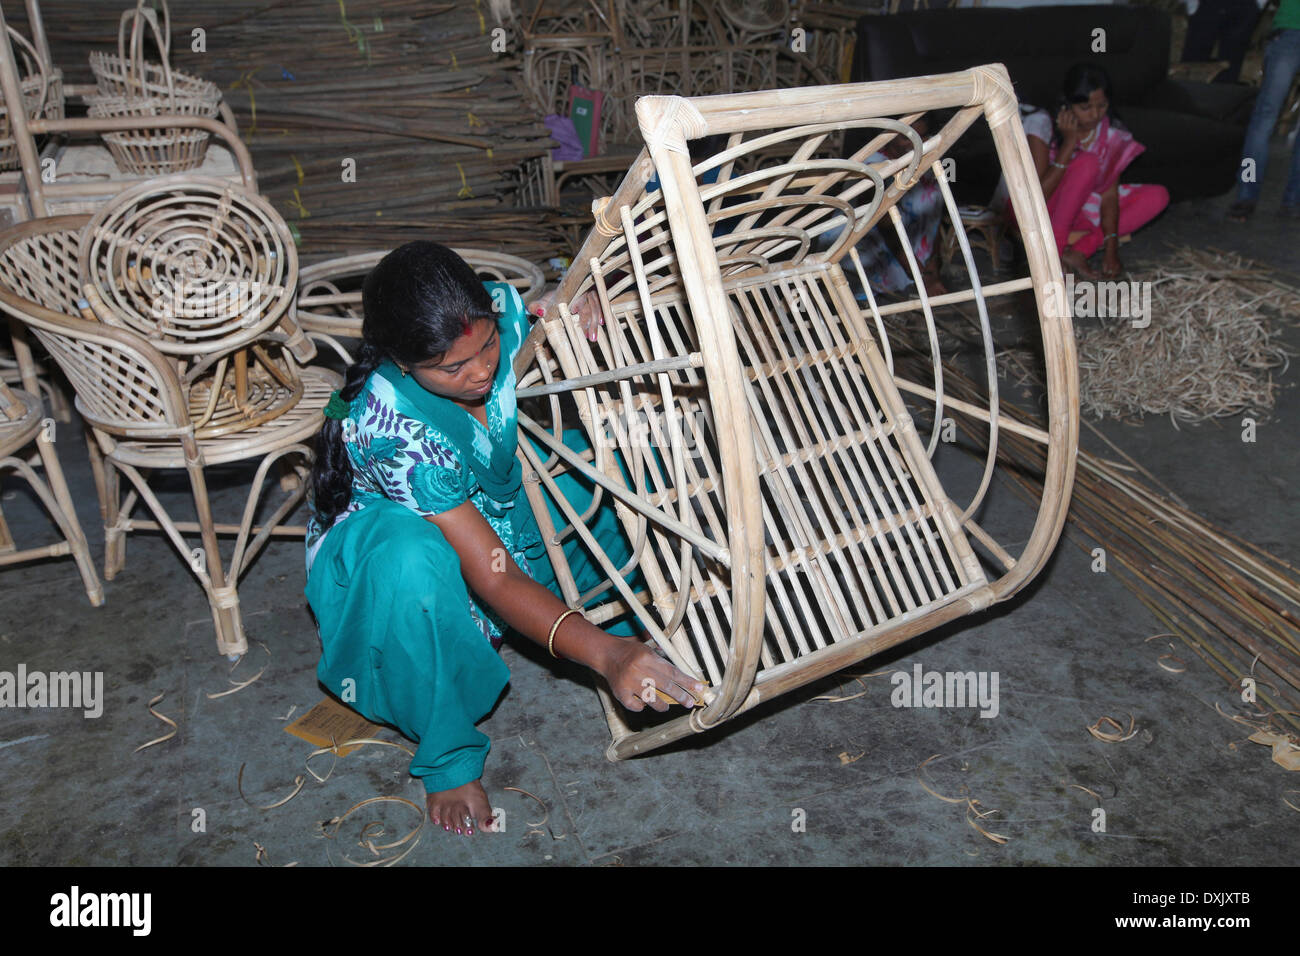 Artisan making bamboo and cane furniture items in urban village, District Hazaribaug, Jharkhand, India - Stock Image